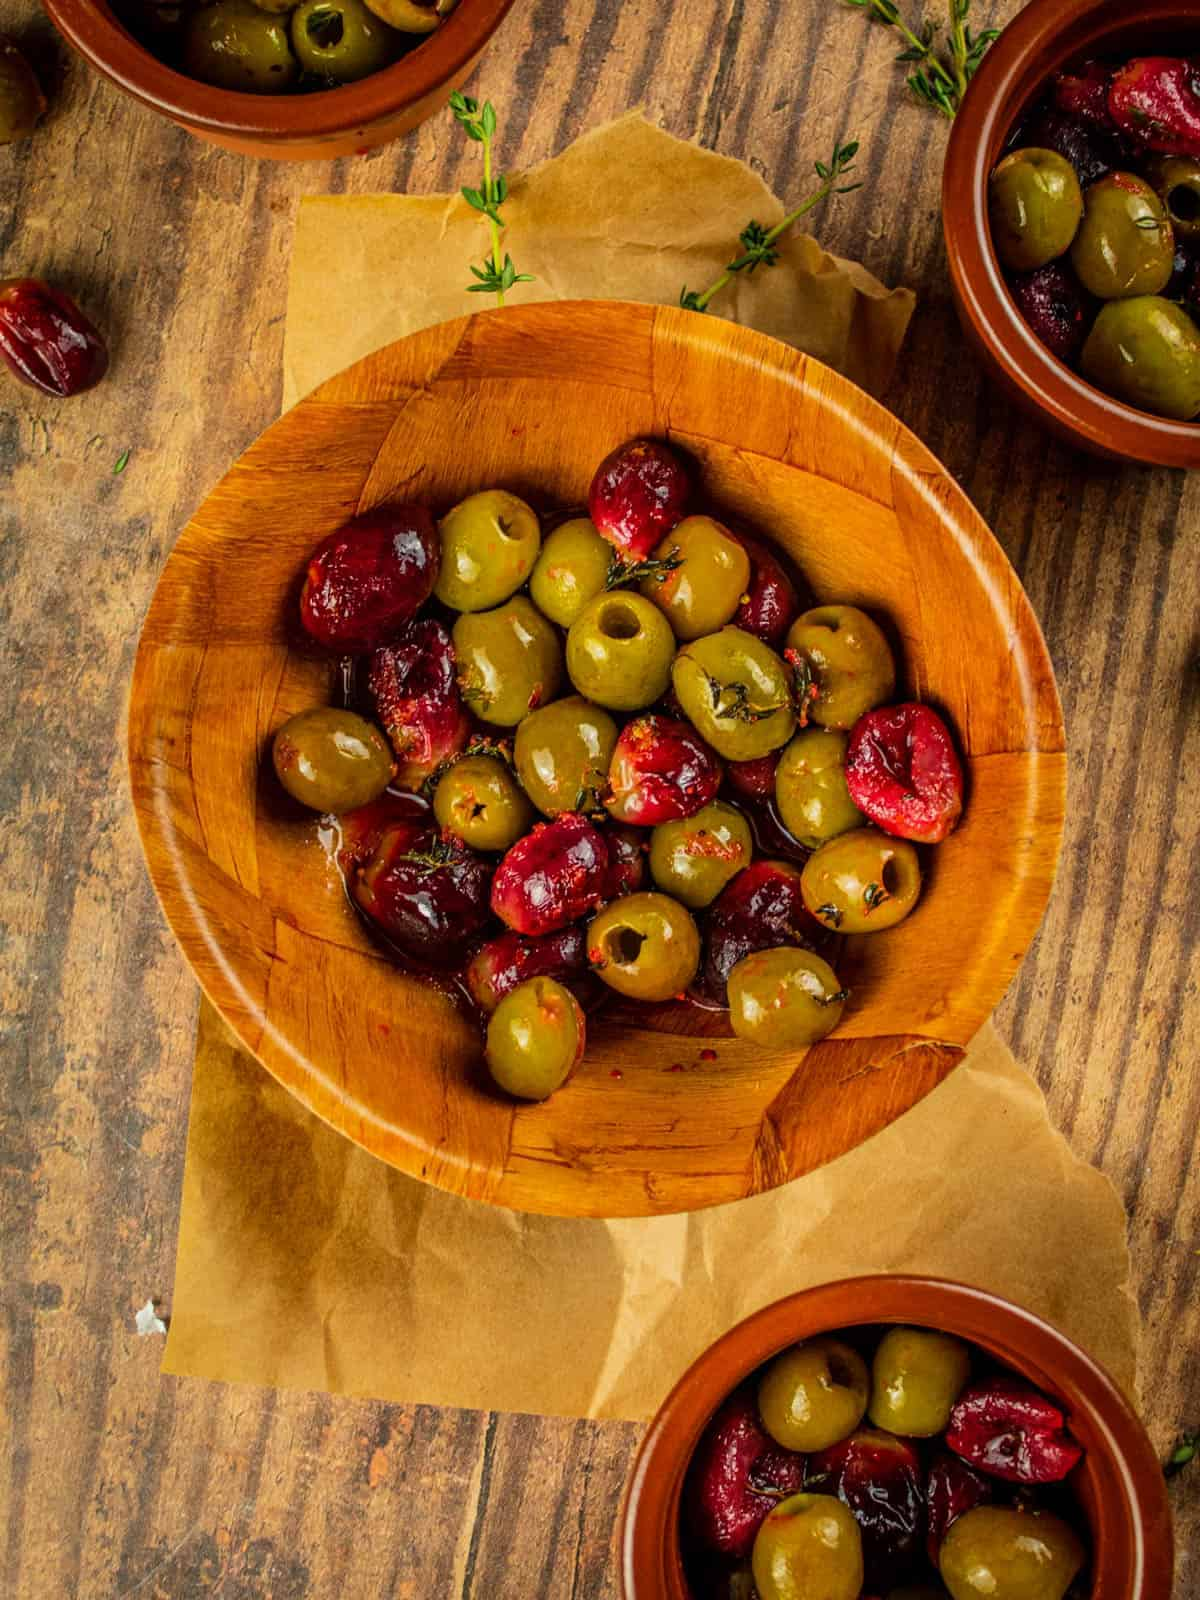 small brown dishes with red grapes and green olives that have been roasted